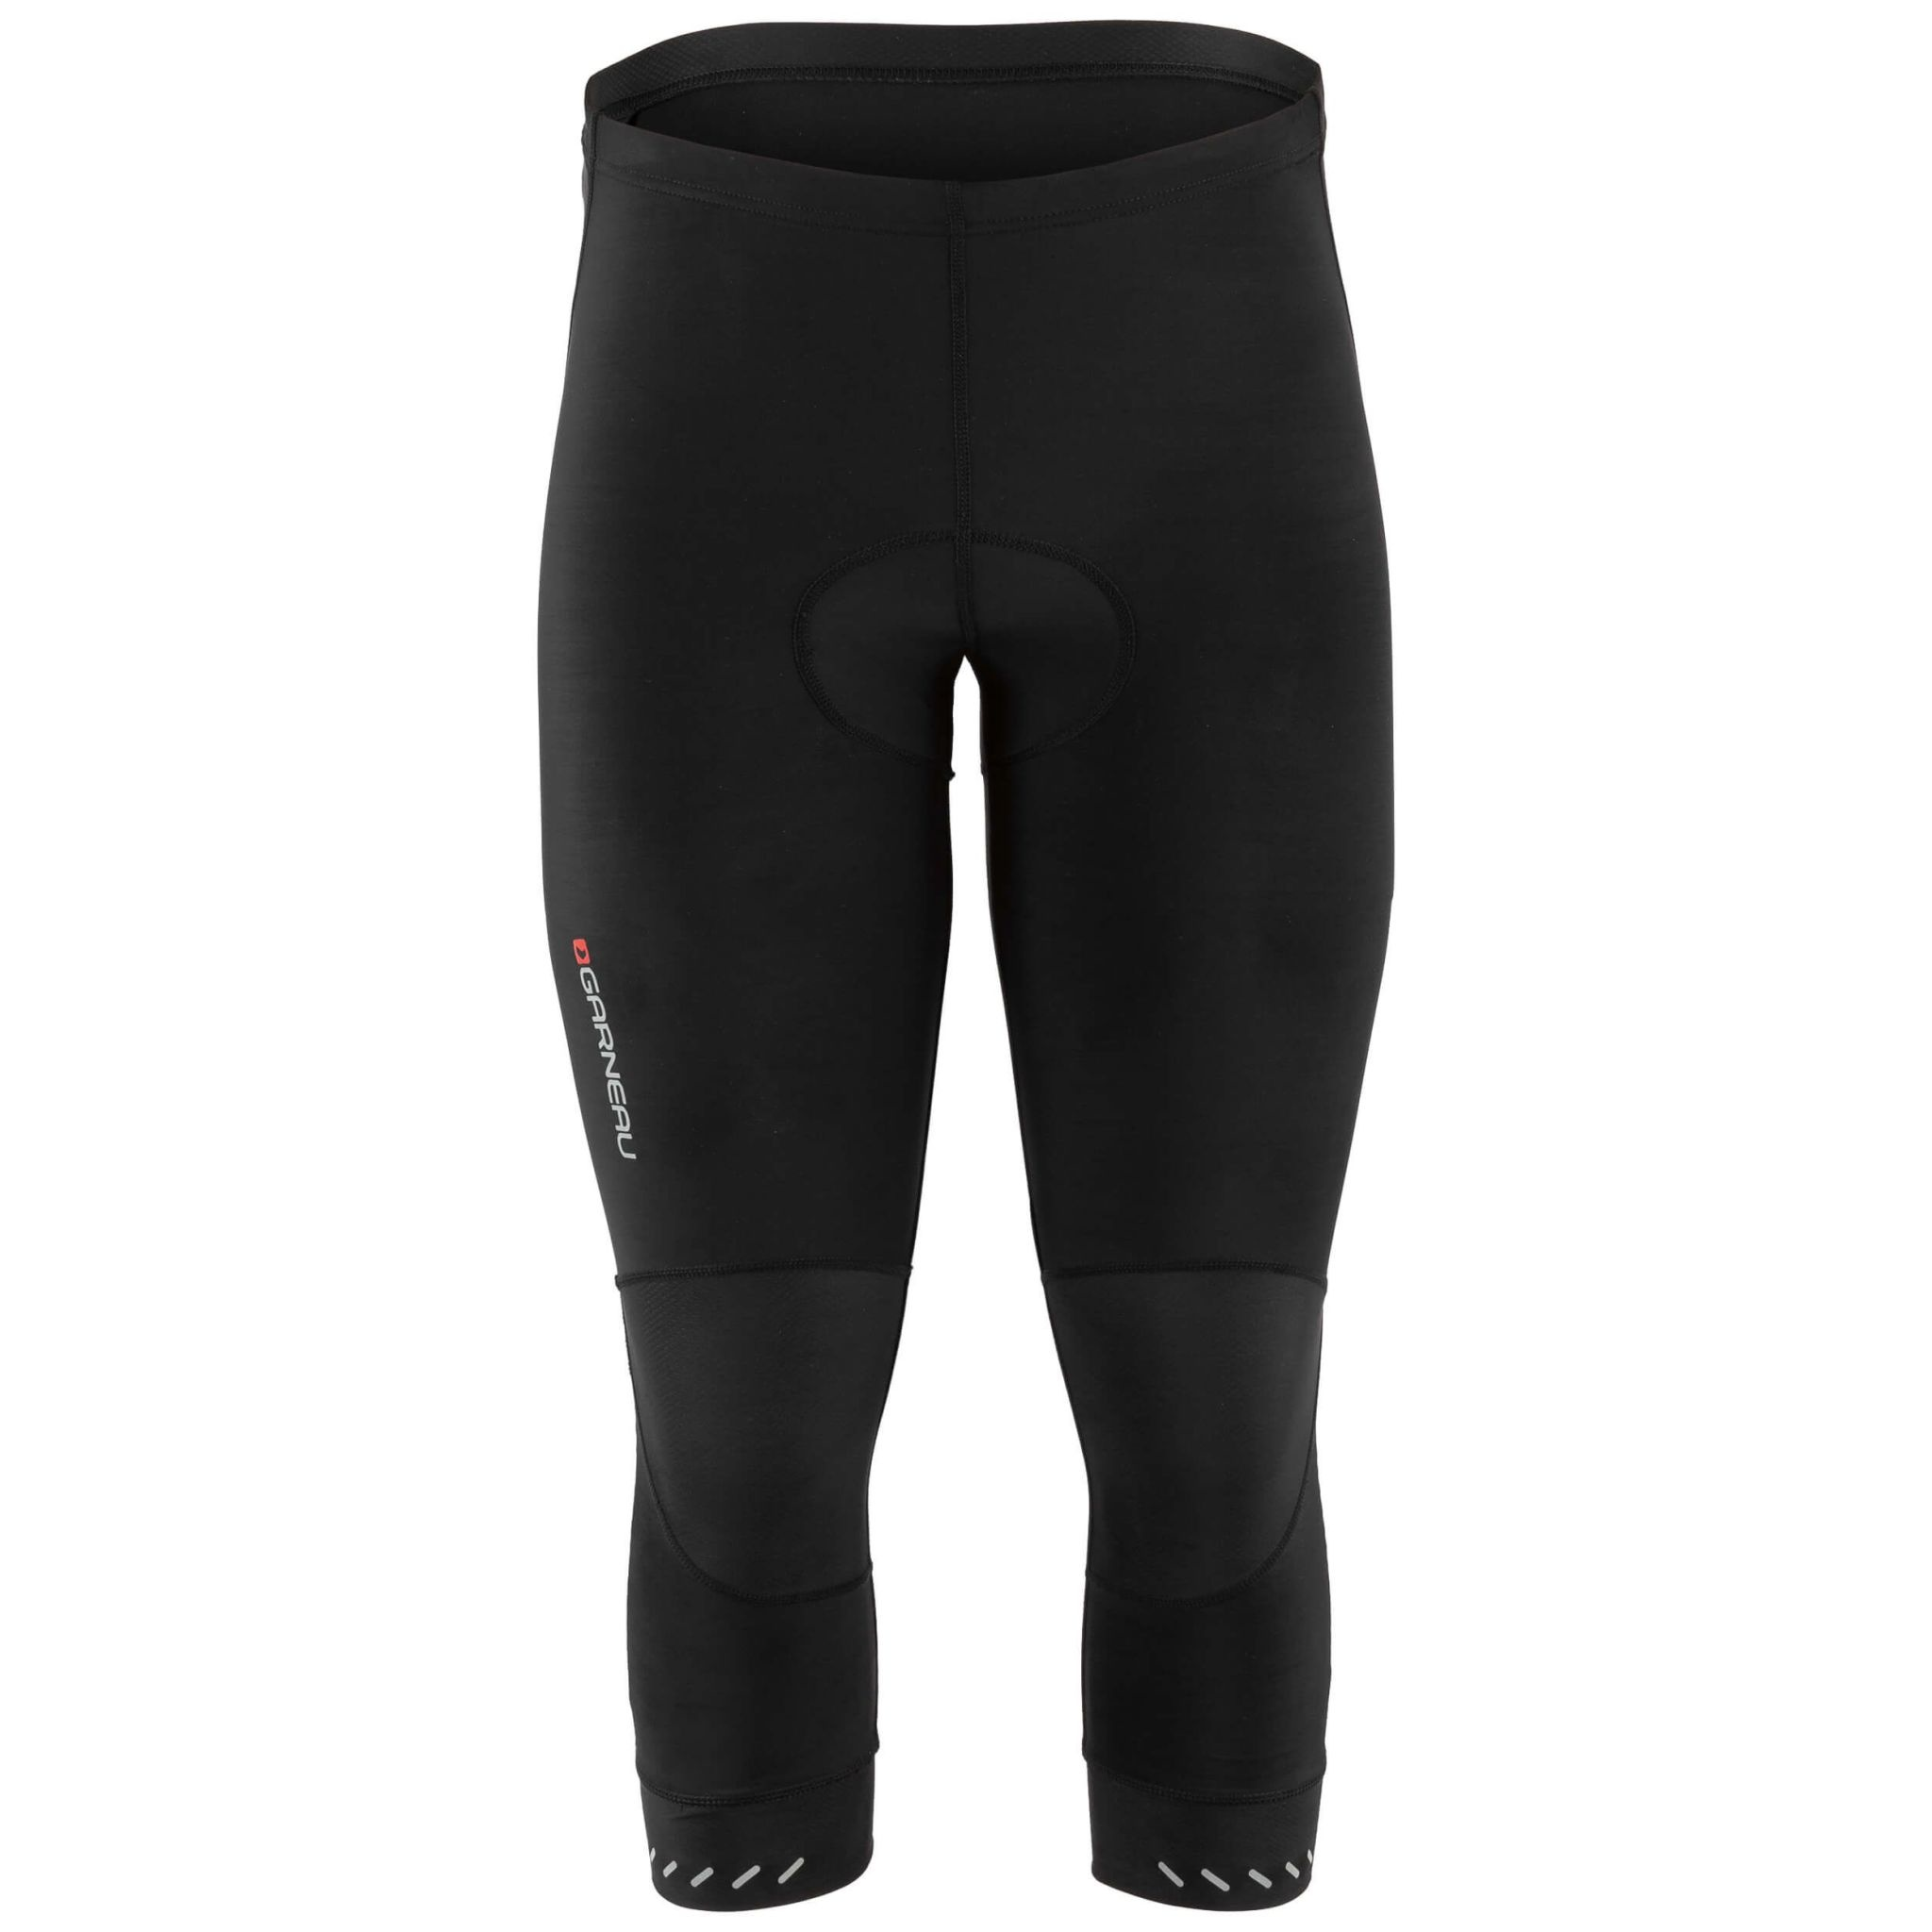 GARNEAU WOMEN'S OPTIMUM CYCLING KNICKER NOIR BLACK XL